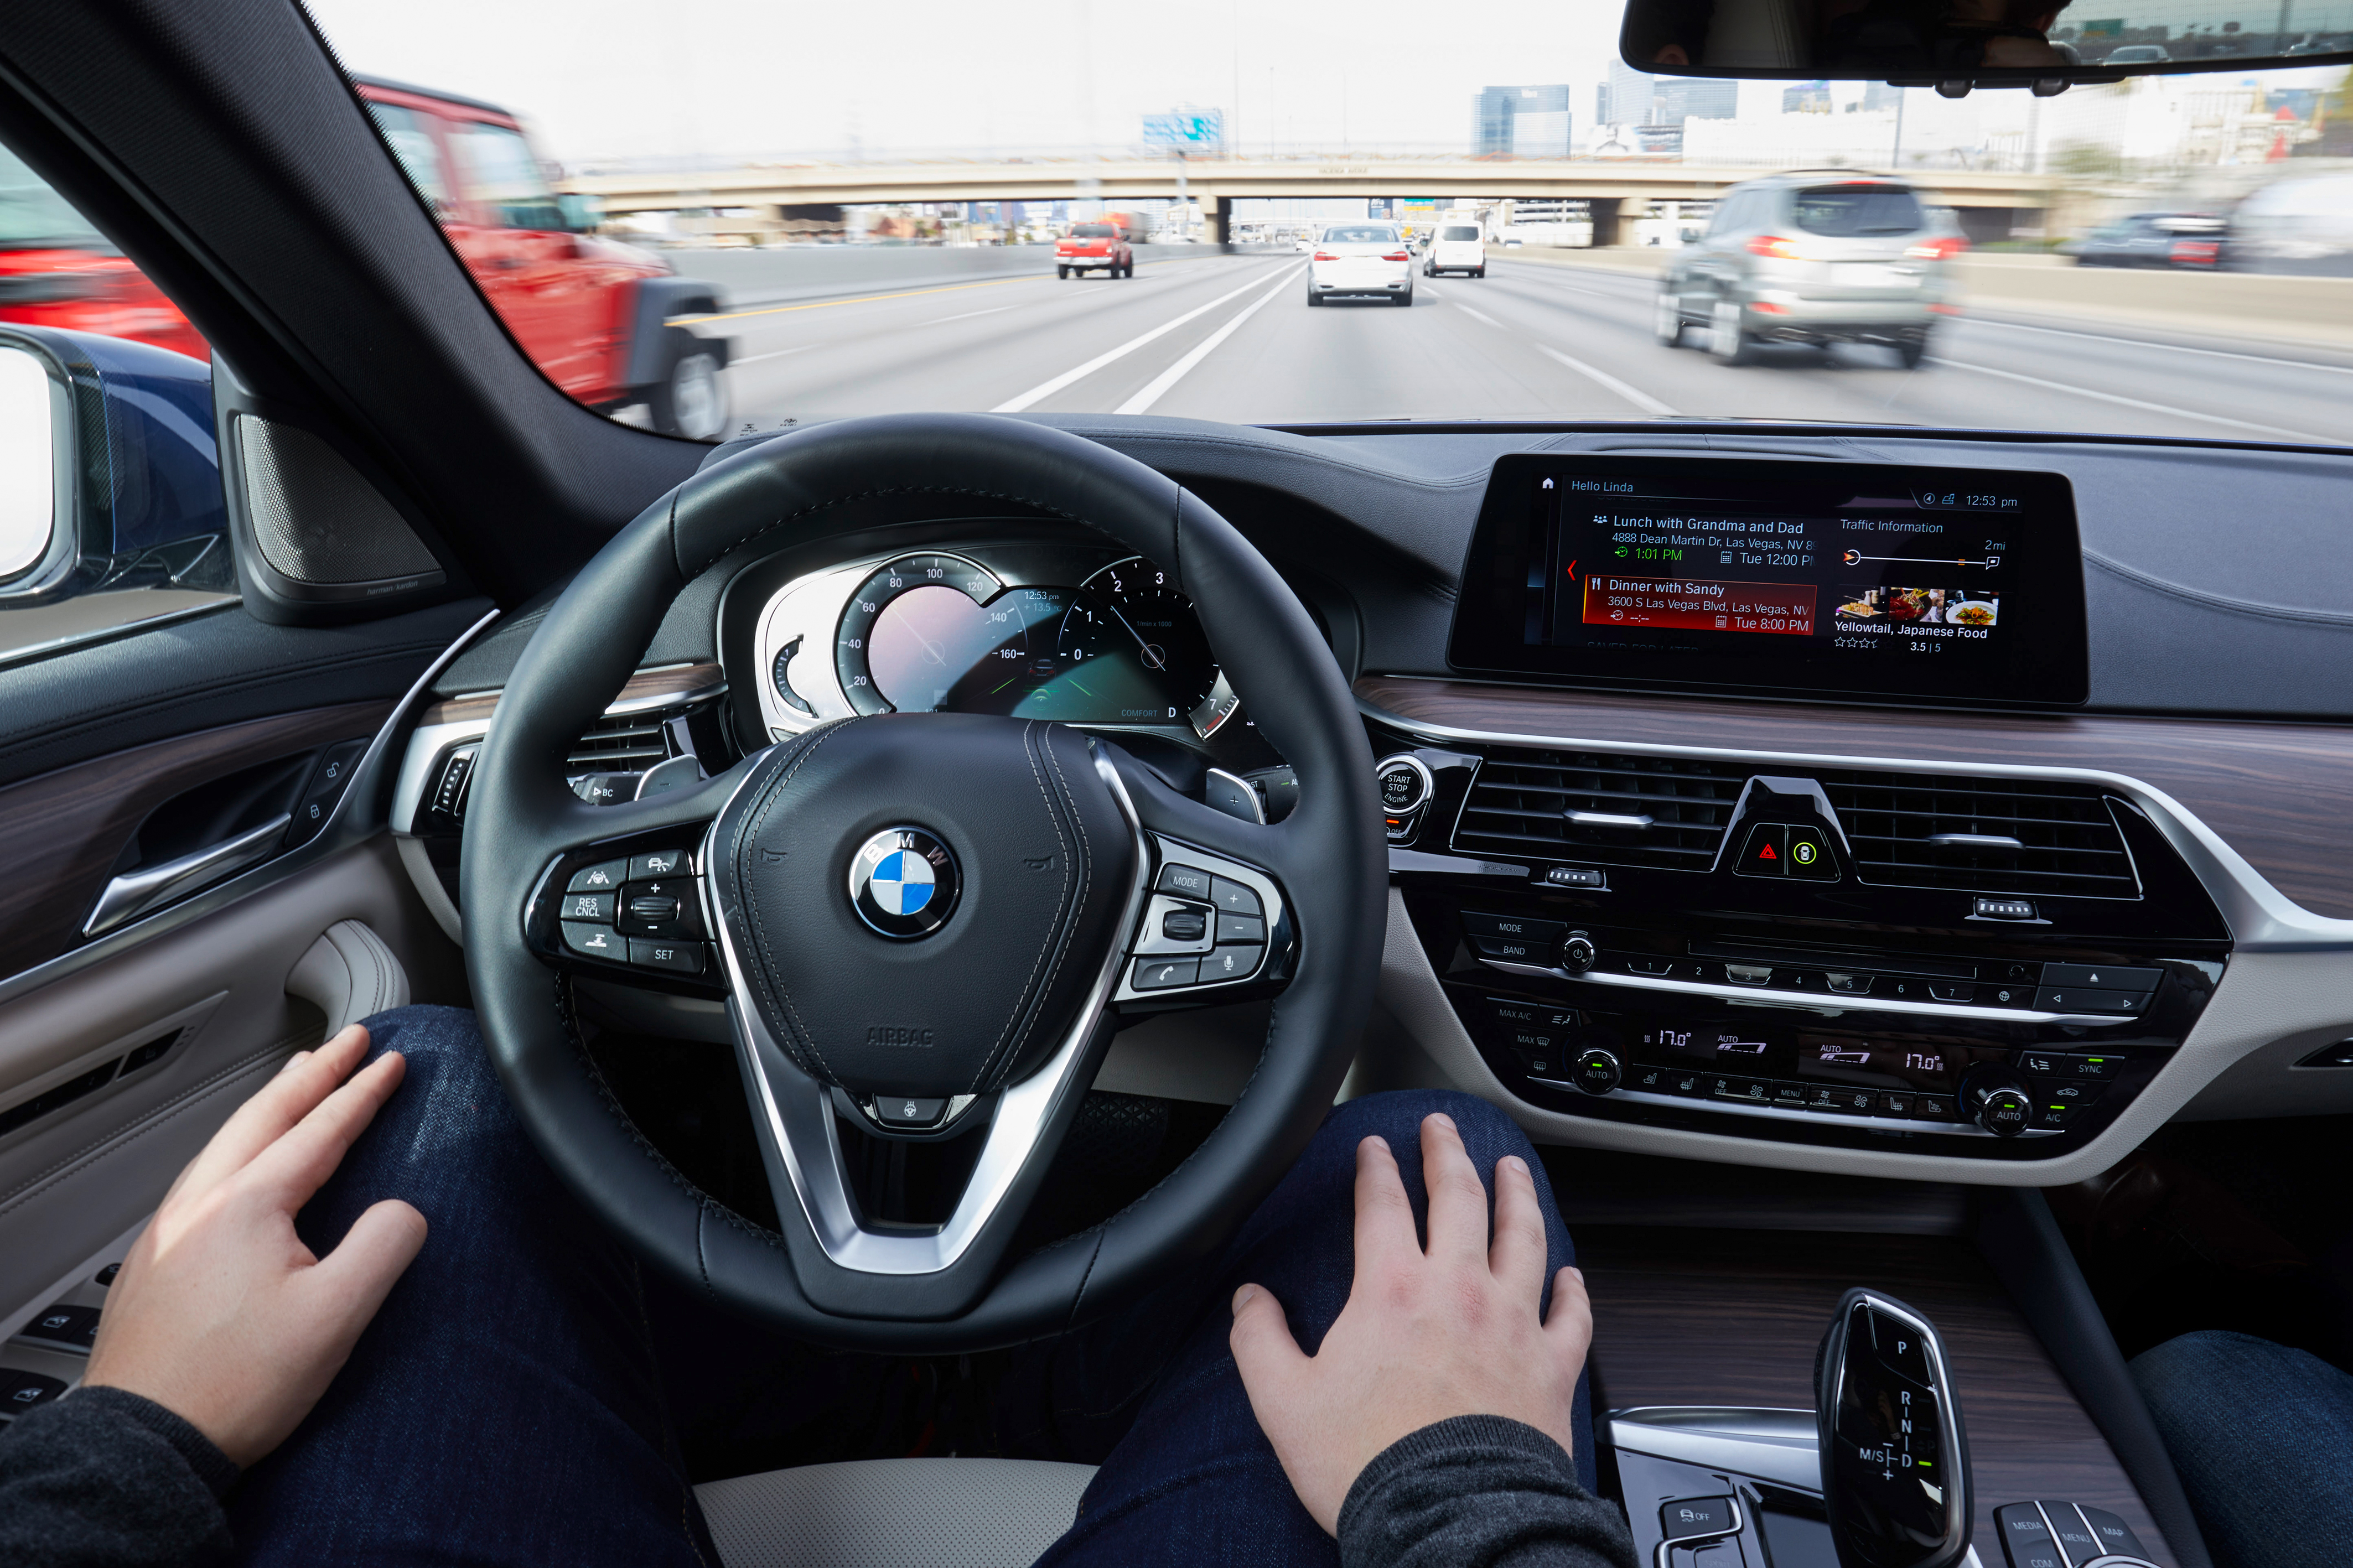 BMW 5-series automated driving